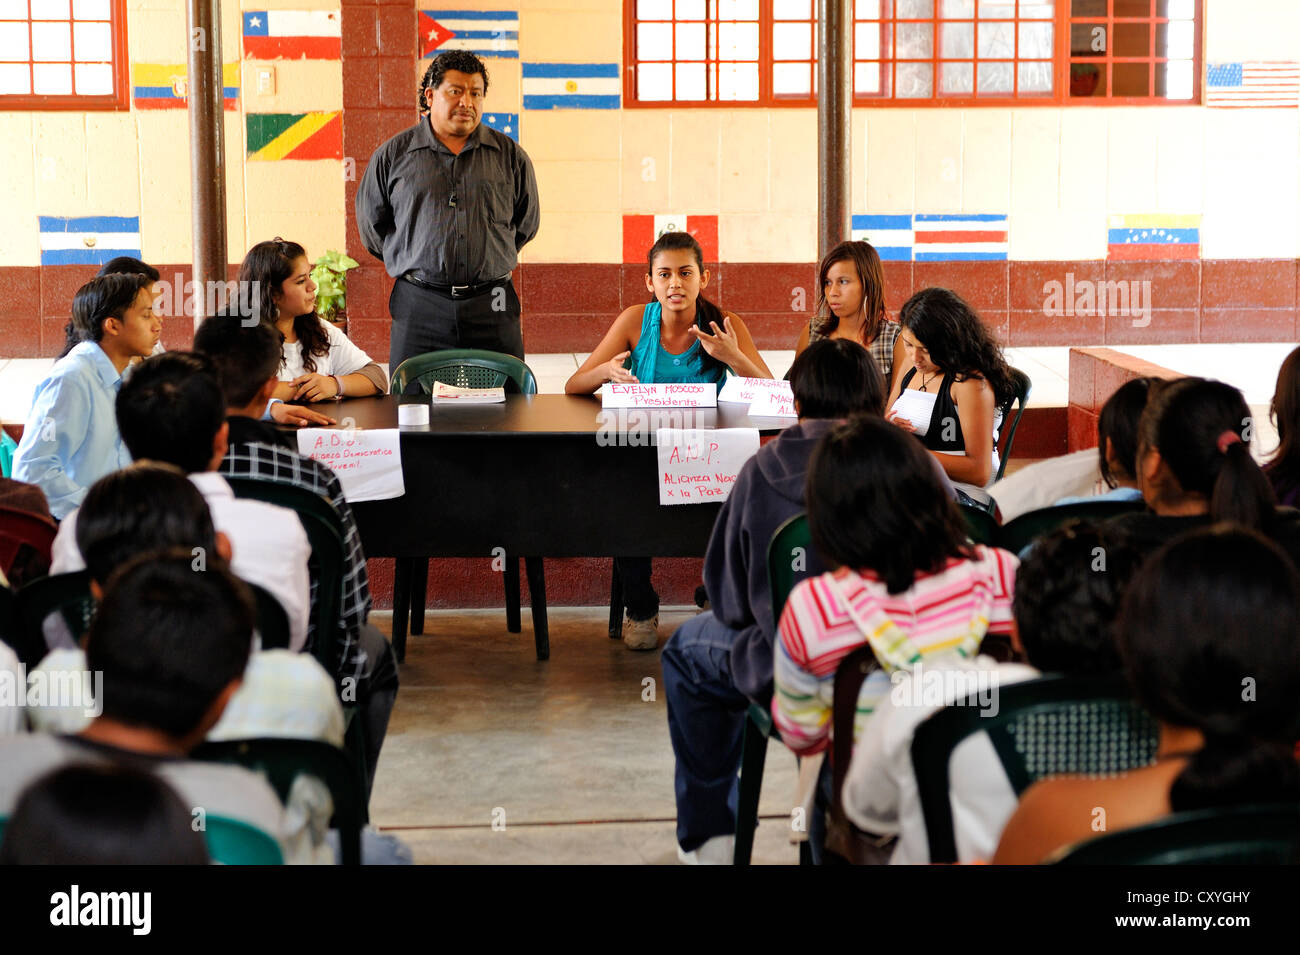 Students of the Escuela Ceiba school staging an election campaign, panel discussion, as part of their social studies - Stock Image